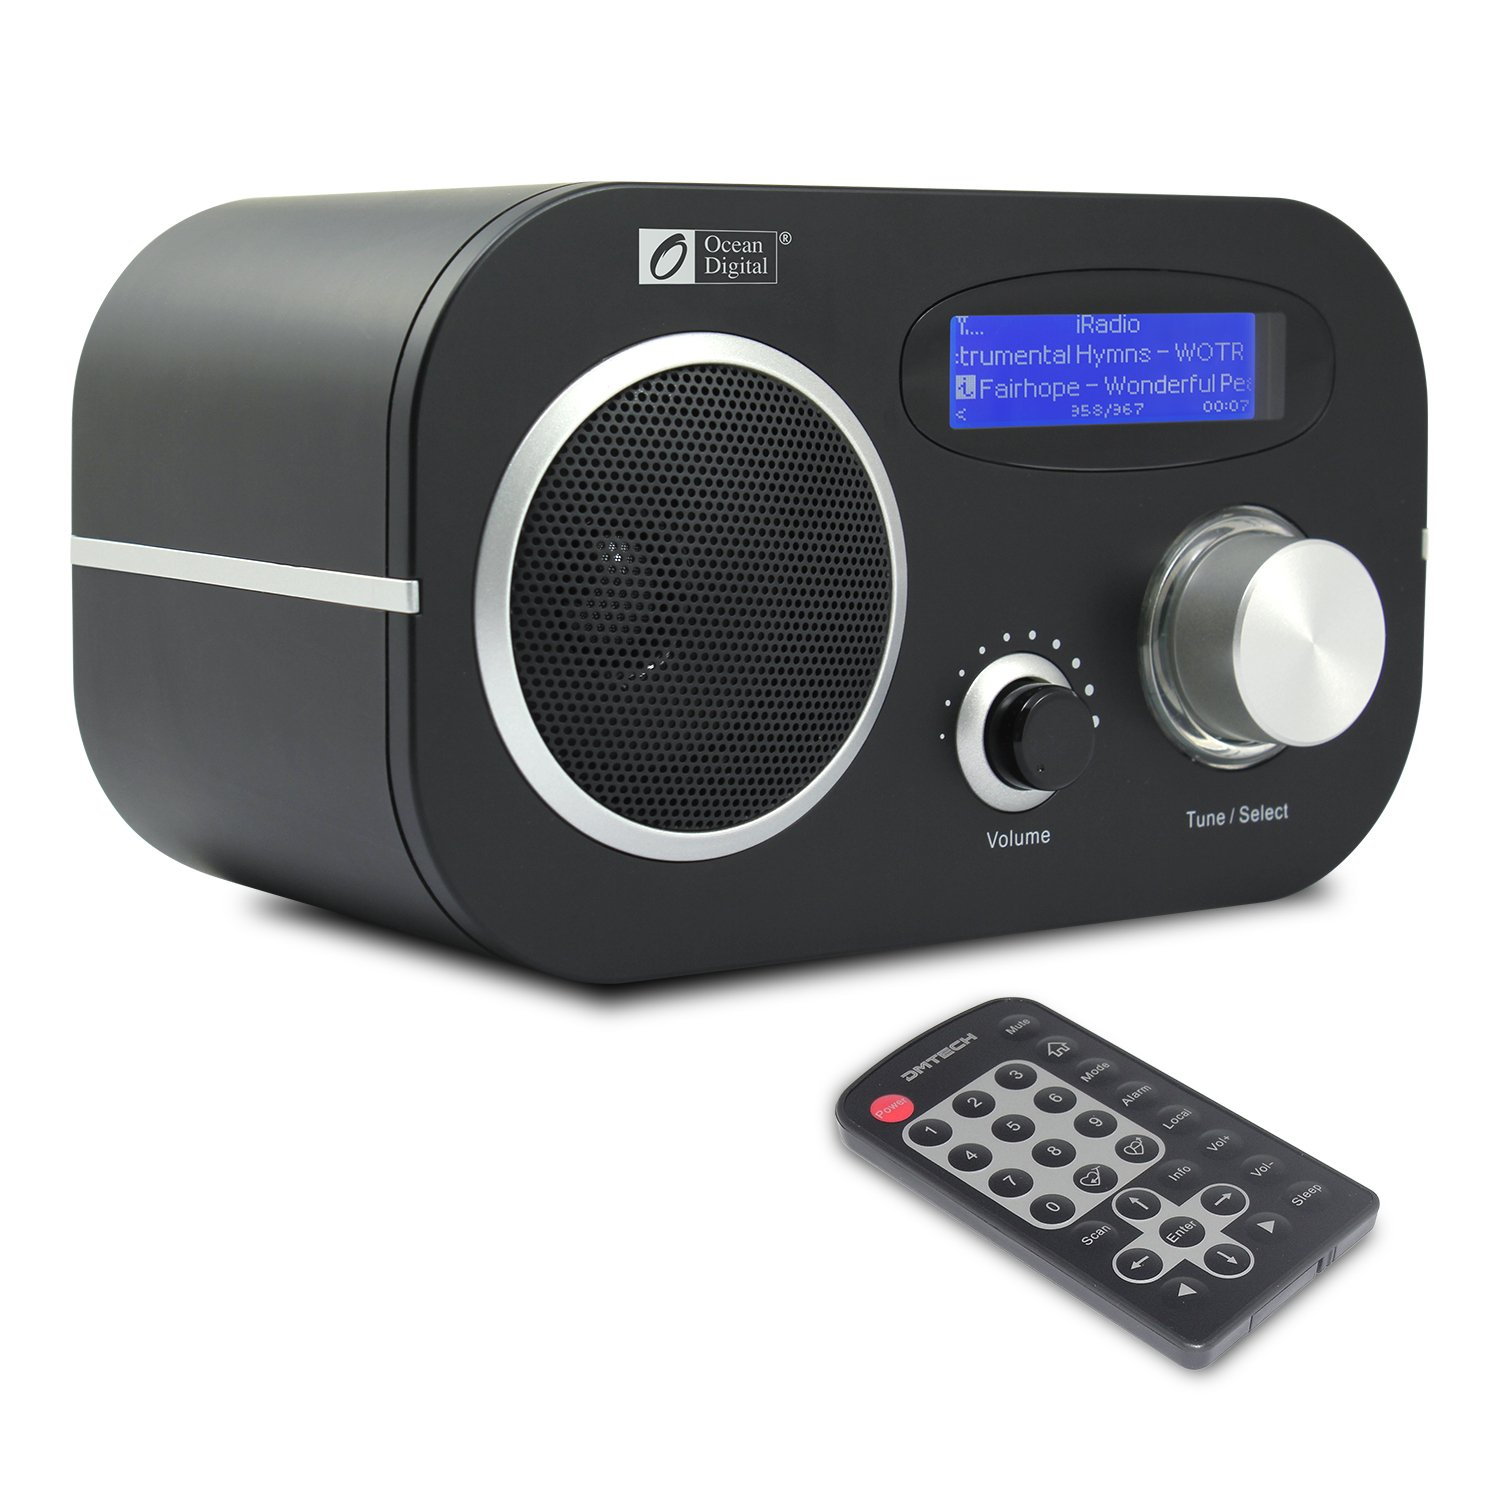 Ocean Digital Internet FM Radio WR80 WiFi Wireless Wlan Receiver Ethernet Desktop Music Media Player with Dual Alarm Clock- Black WR-80